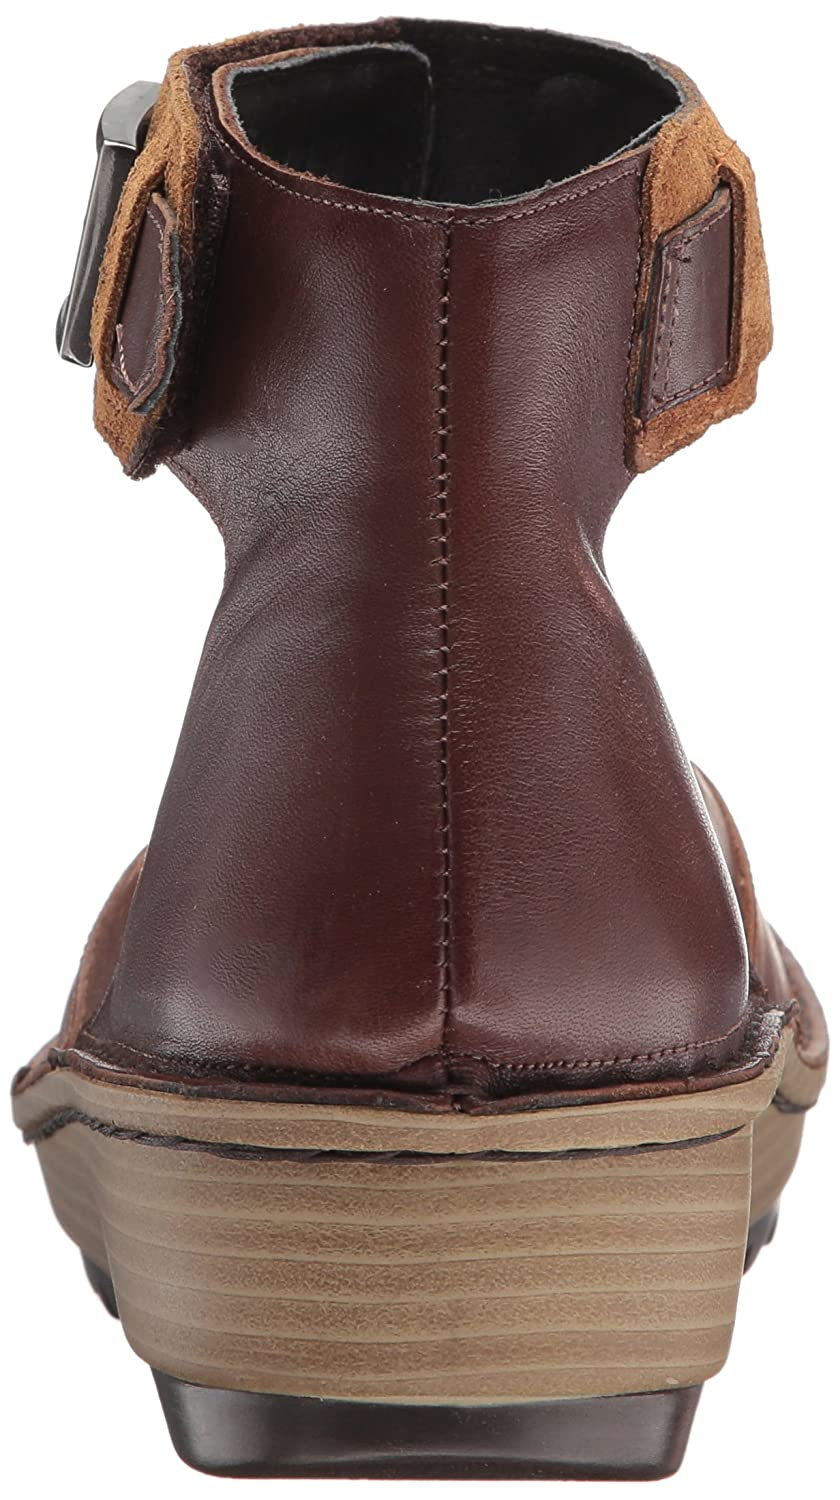 NAOT Women's Sycamore Mary Jane Flat B01N24P4BB 38 Medium EU (7 US) Vintage Camel Leather/Toffee Brown Leather/Desert Sued